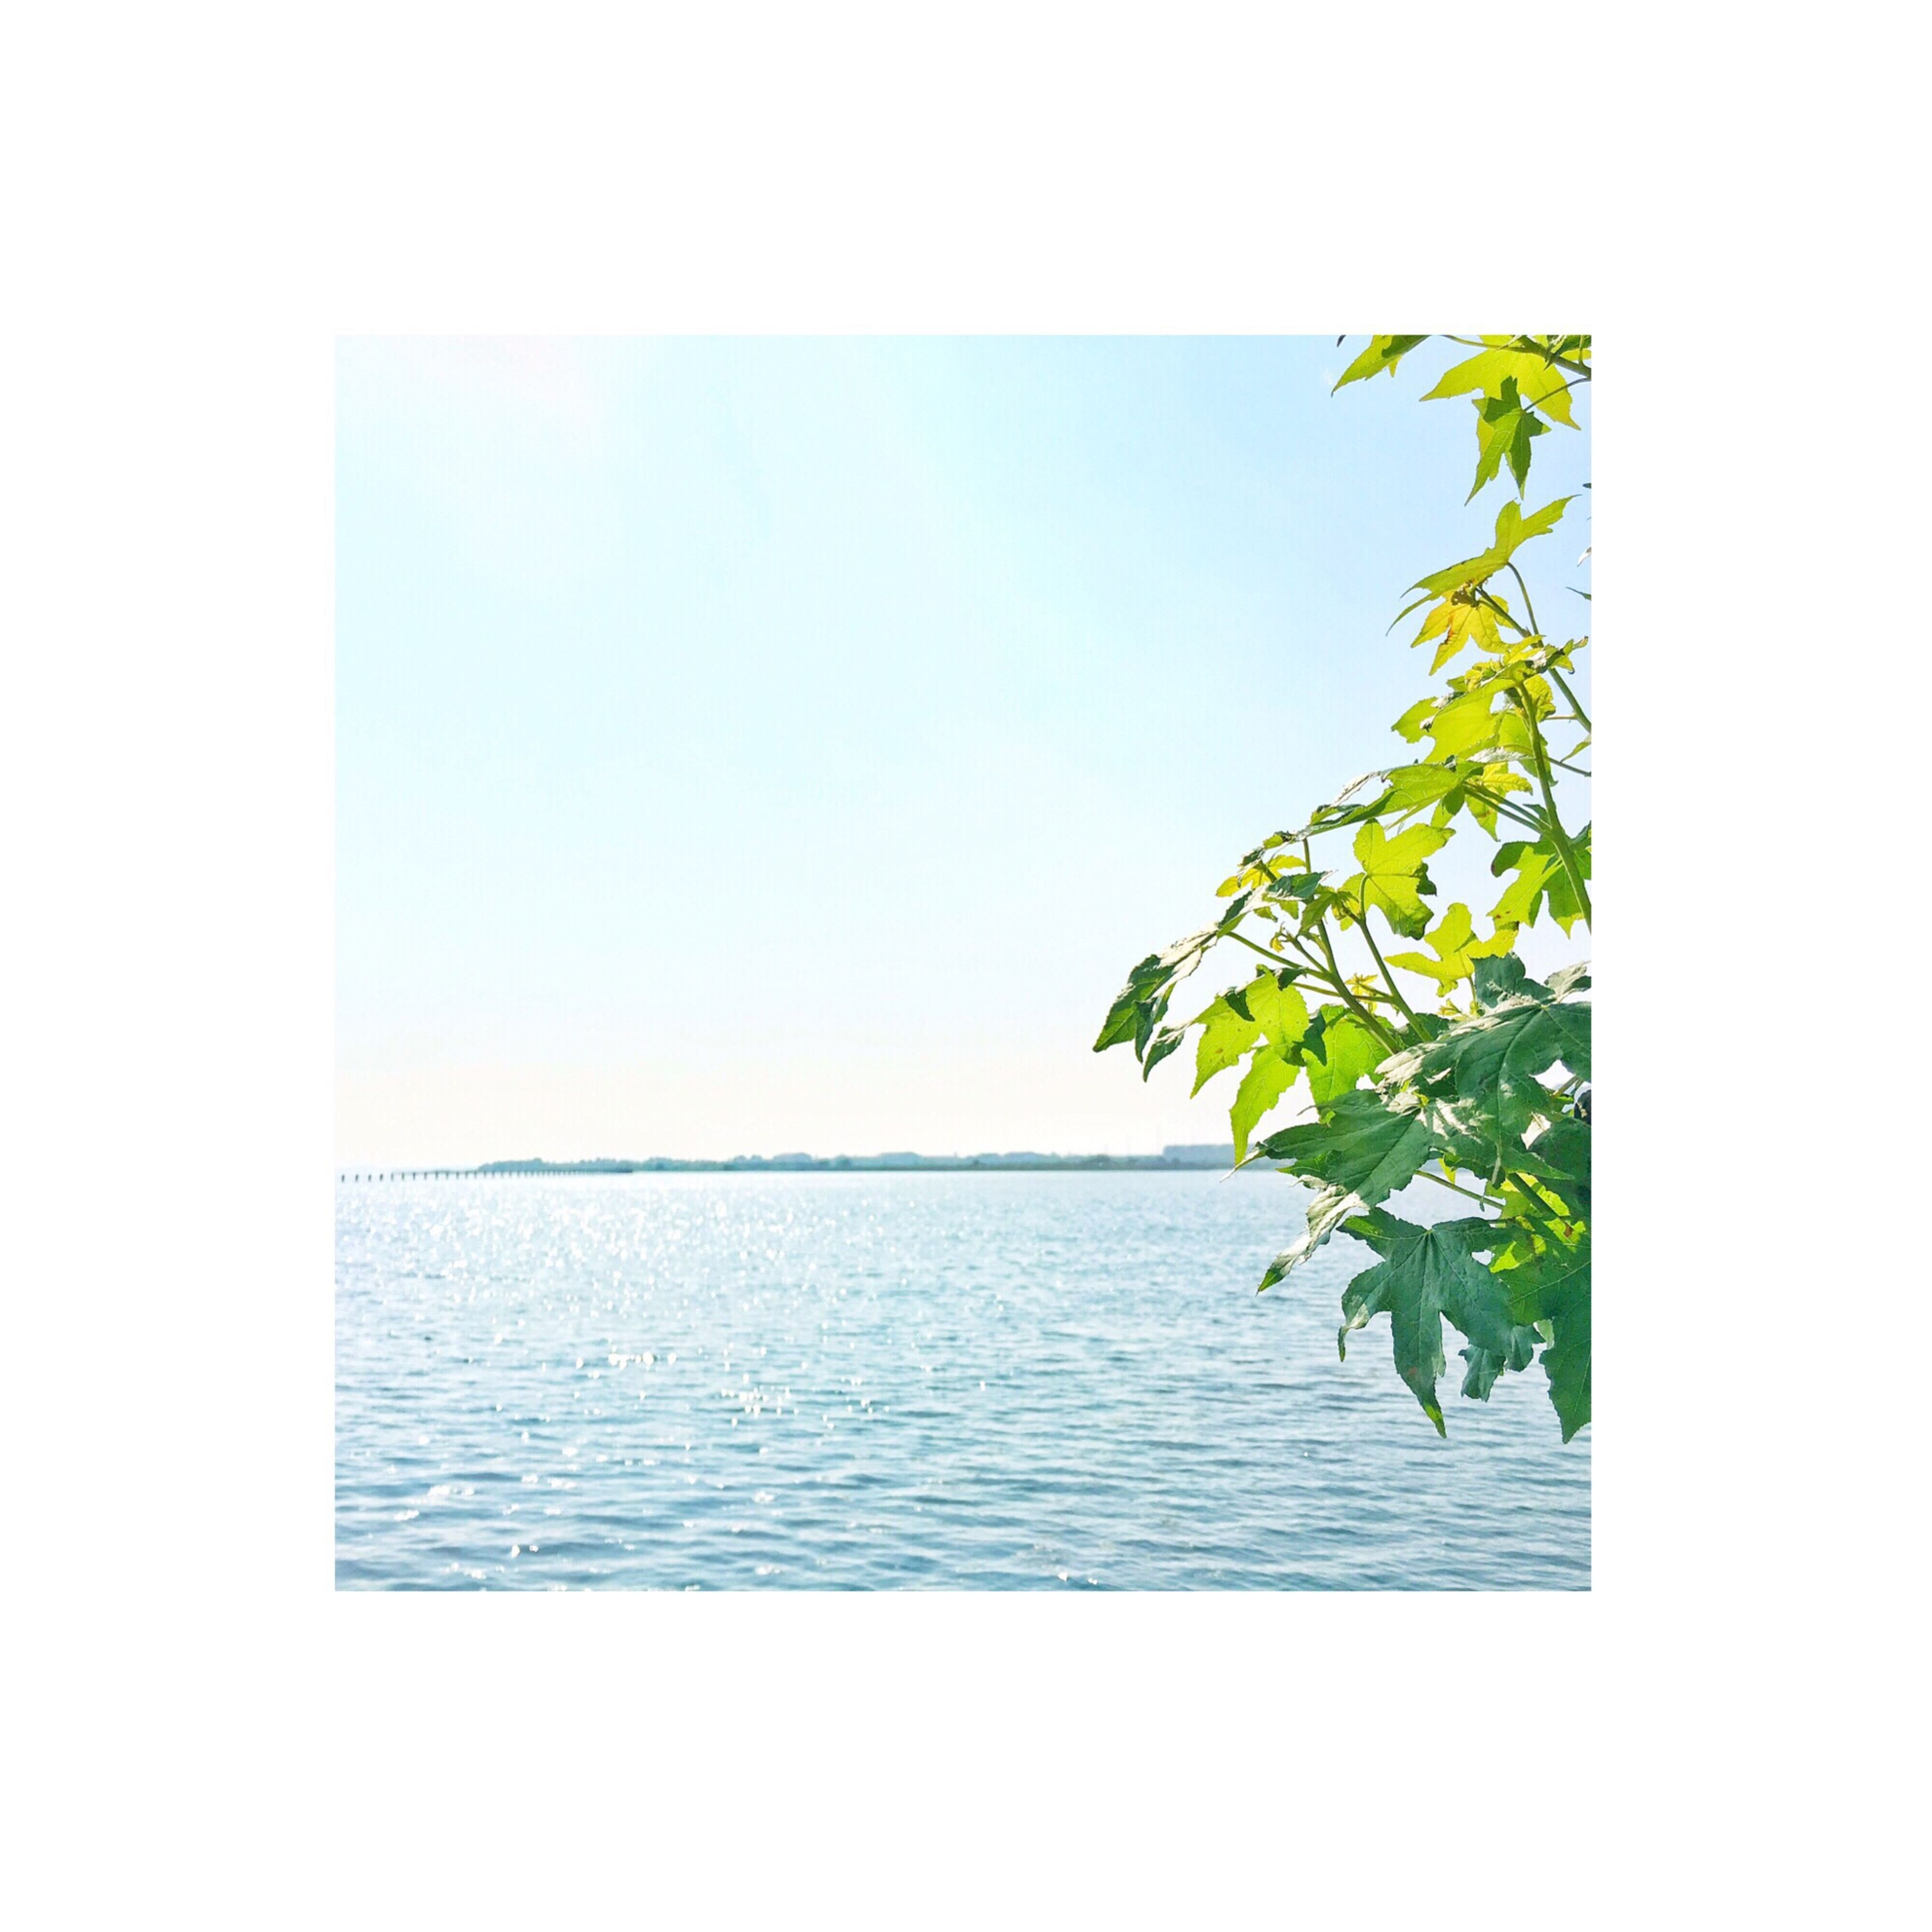 sea, water, horizon over water, clear sky, copy space, tranquility, beauty in nature, tranquil scene, nature, scenics, waterfront, transfer print, auto post production filter, growth, tree, leaf, rippled, plant, sky, green color